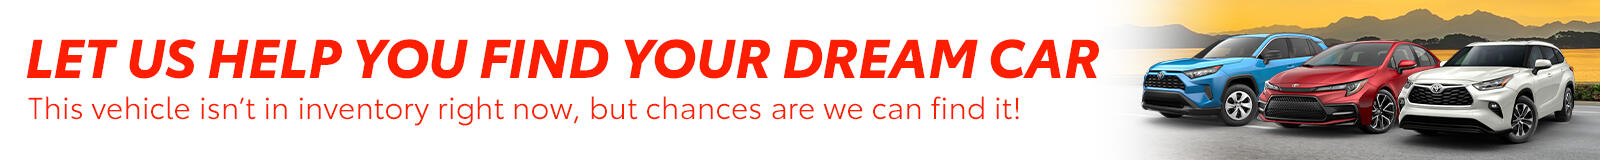 Let Us Help You Find Your Dream Car